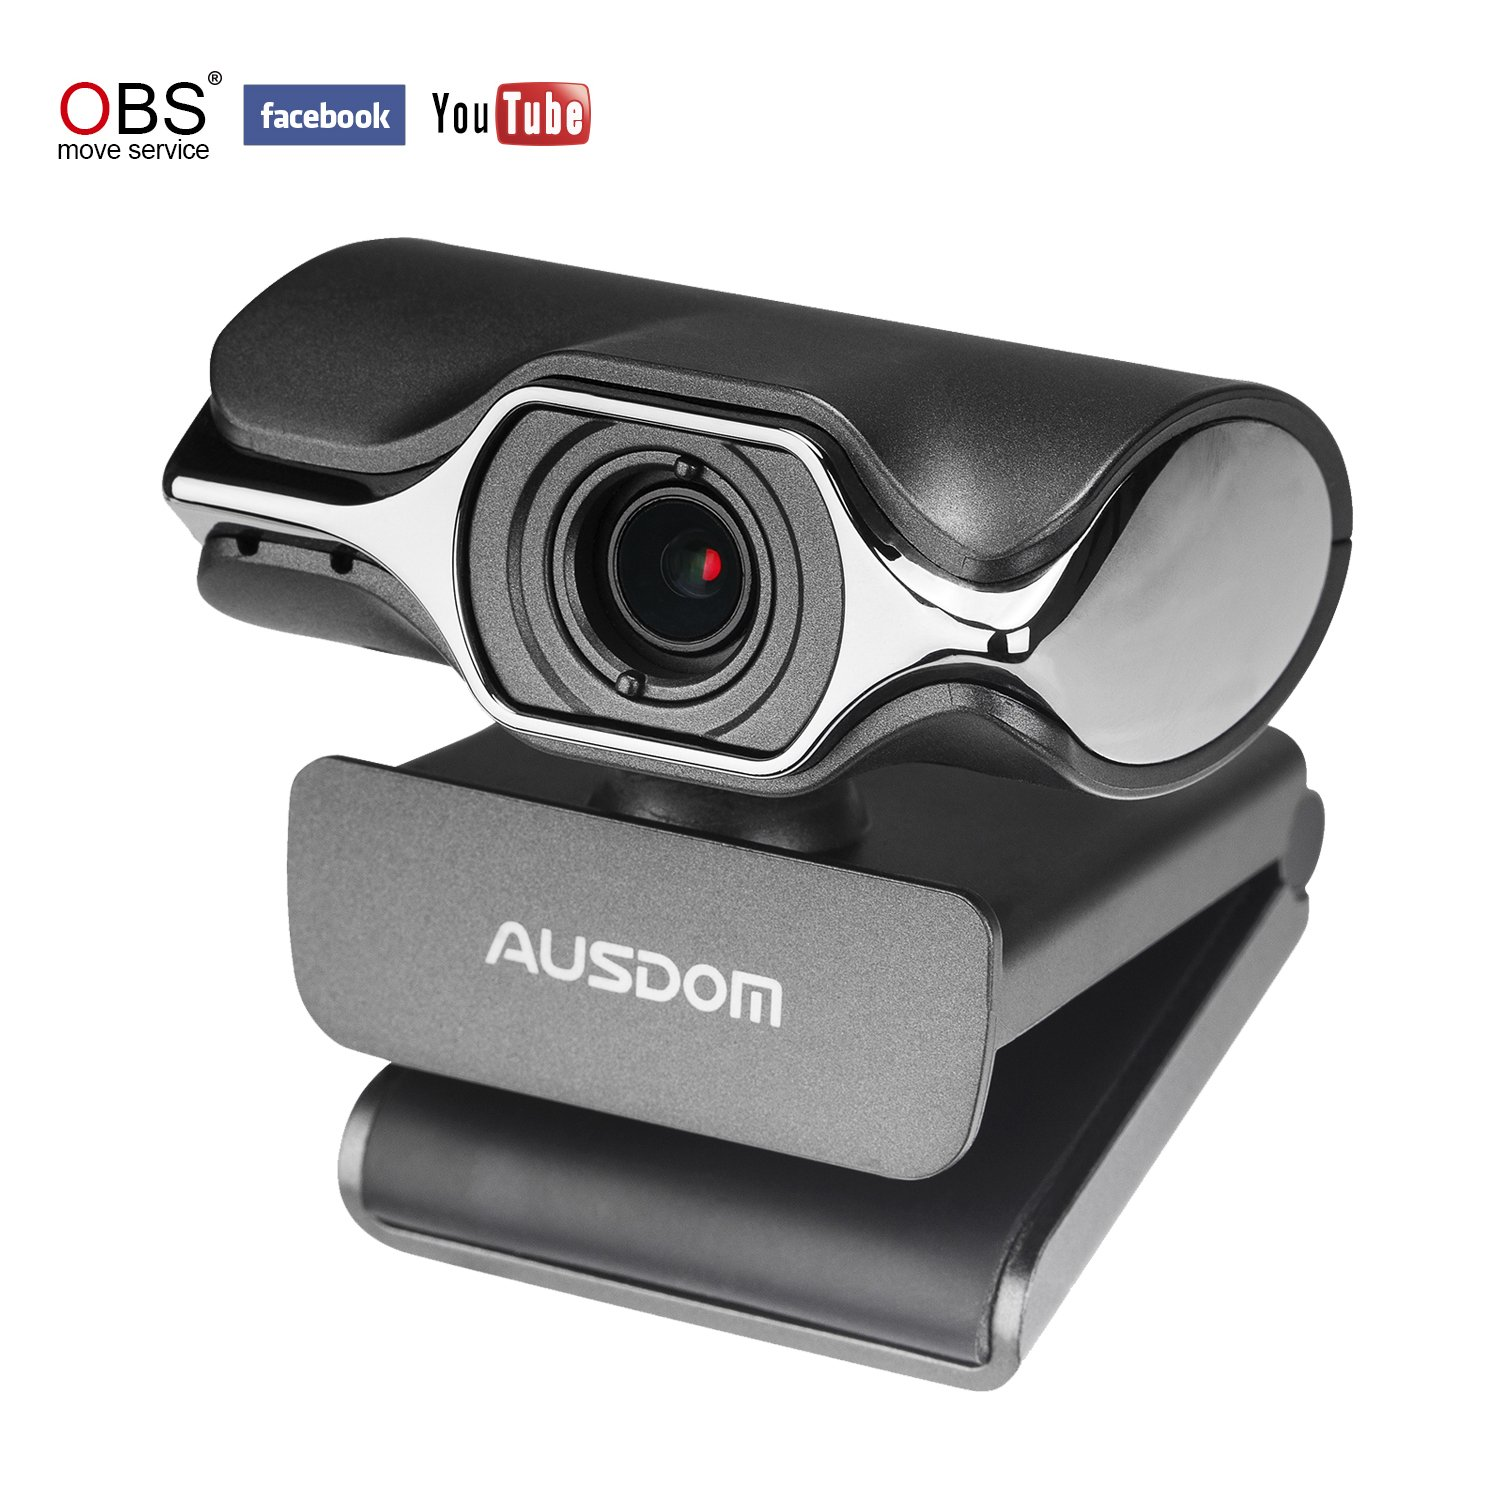 AUSDOM Webcam Streaming AW620 Pro Stream Web Camera Full 1080p HD Built-in Microphone OBS Studio for YouTube or Twitch Streaming: Amazon.co.uk: Computers & Accessories